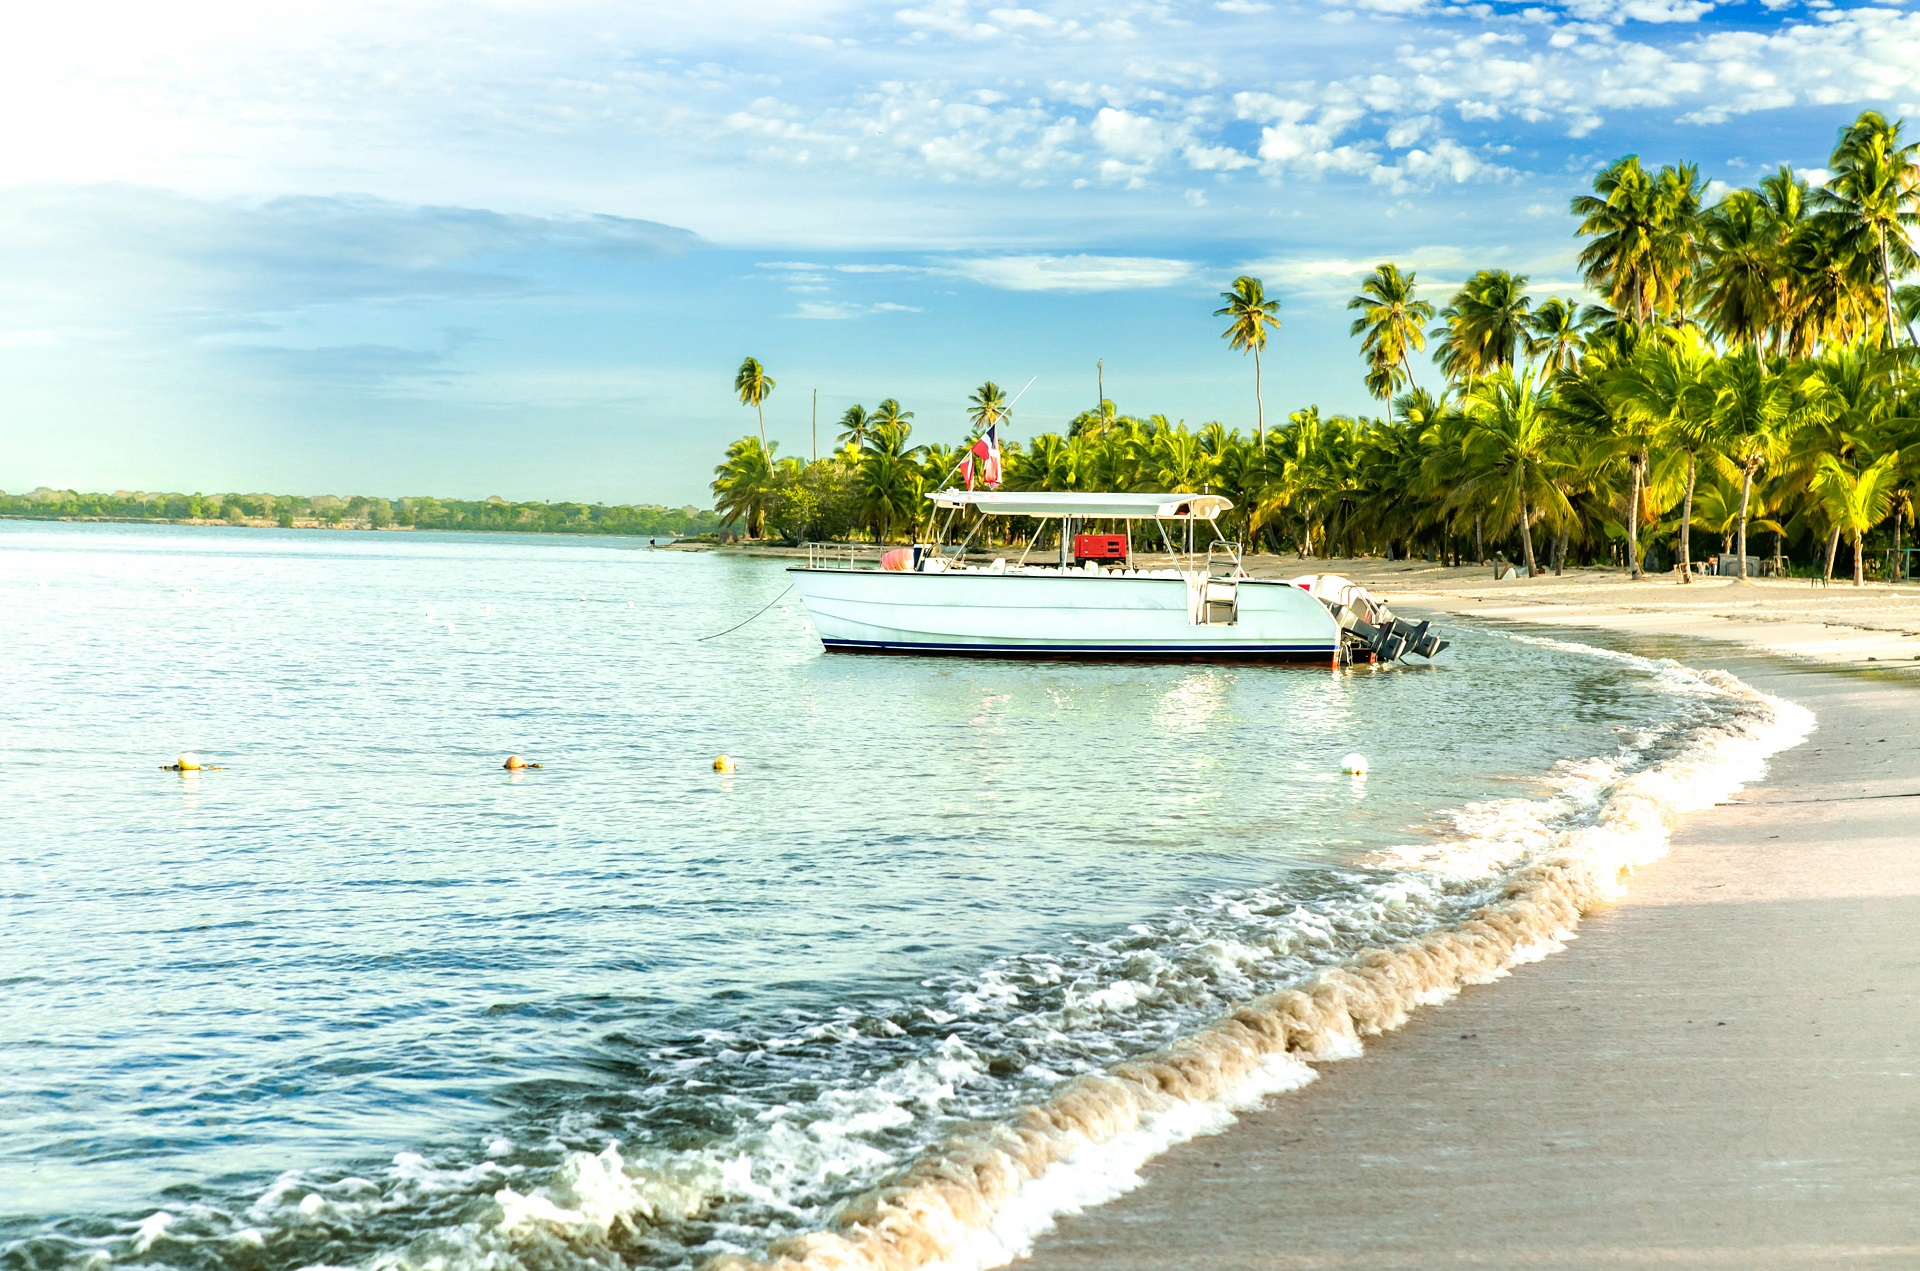 beach-in-dominican-republic-istock_000085534691_large-2